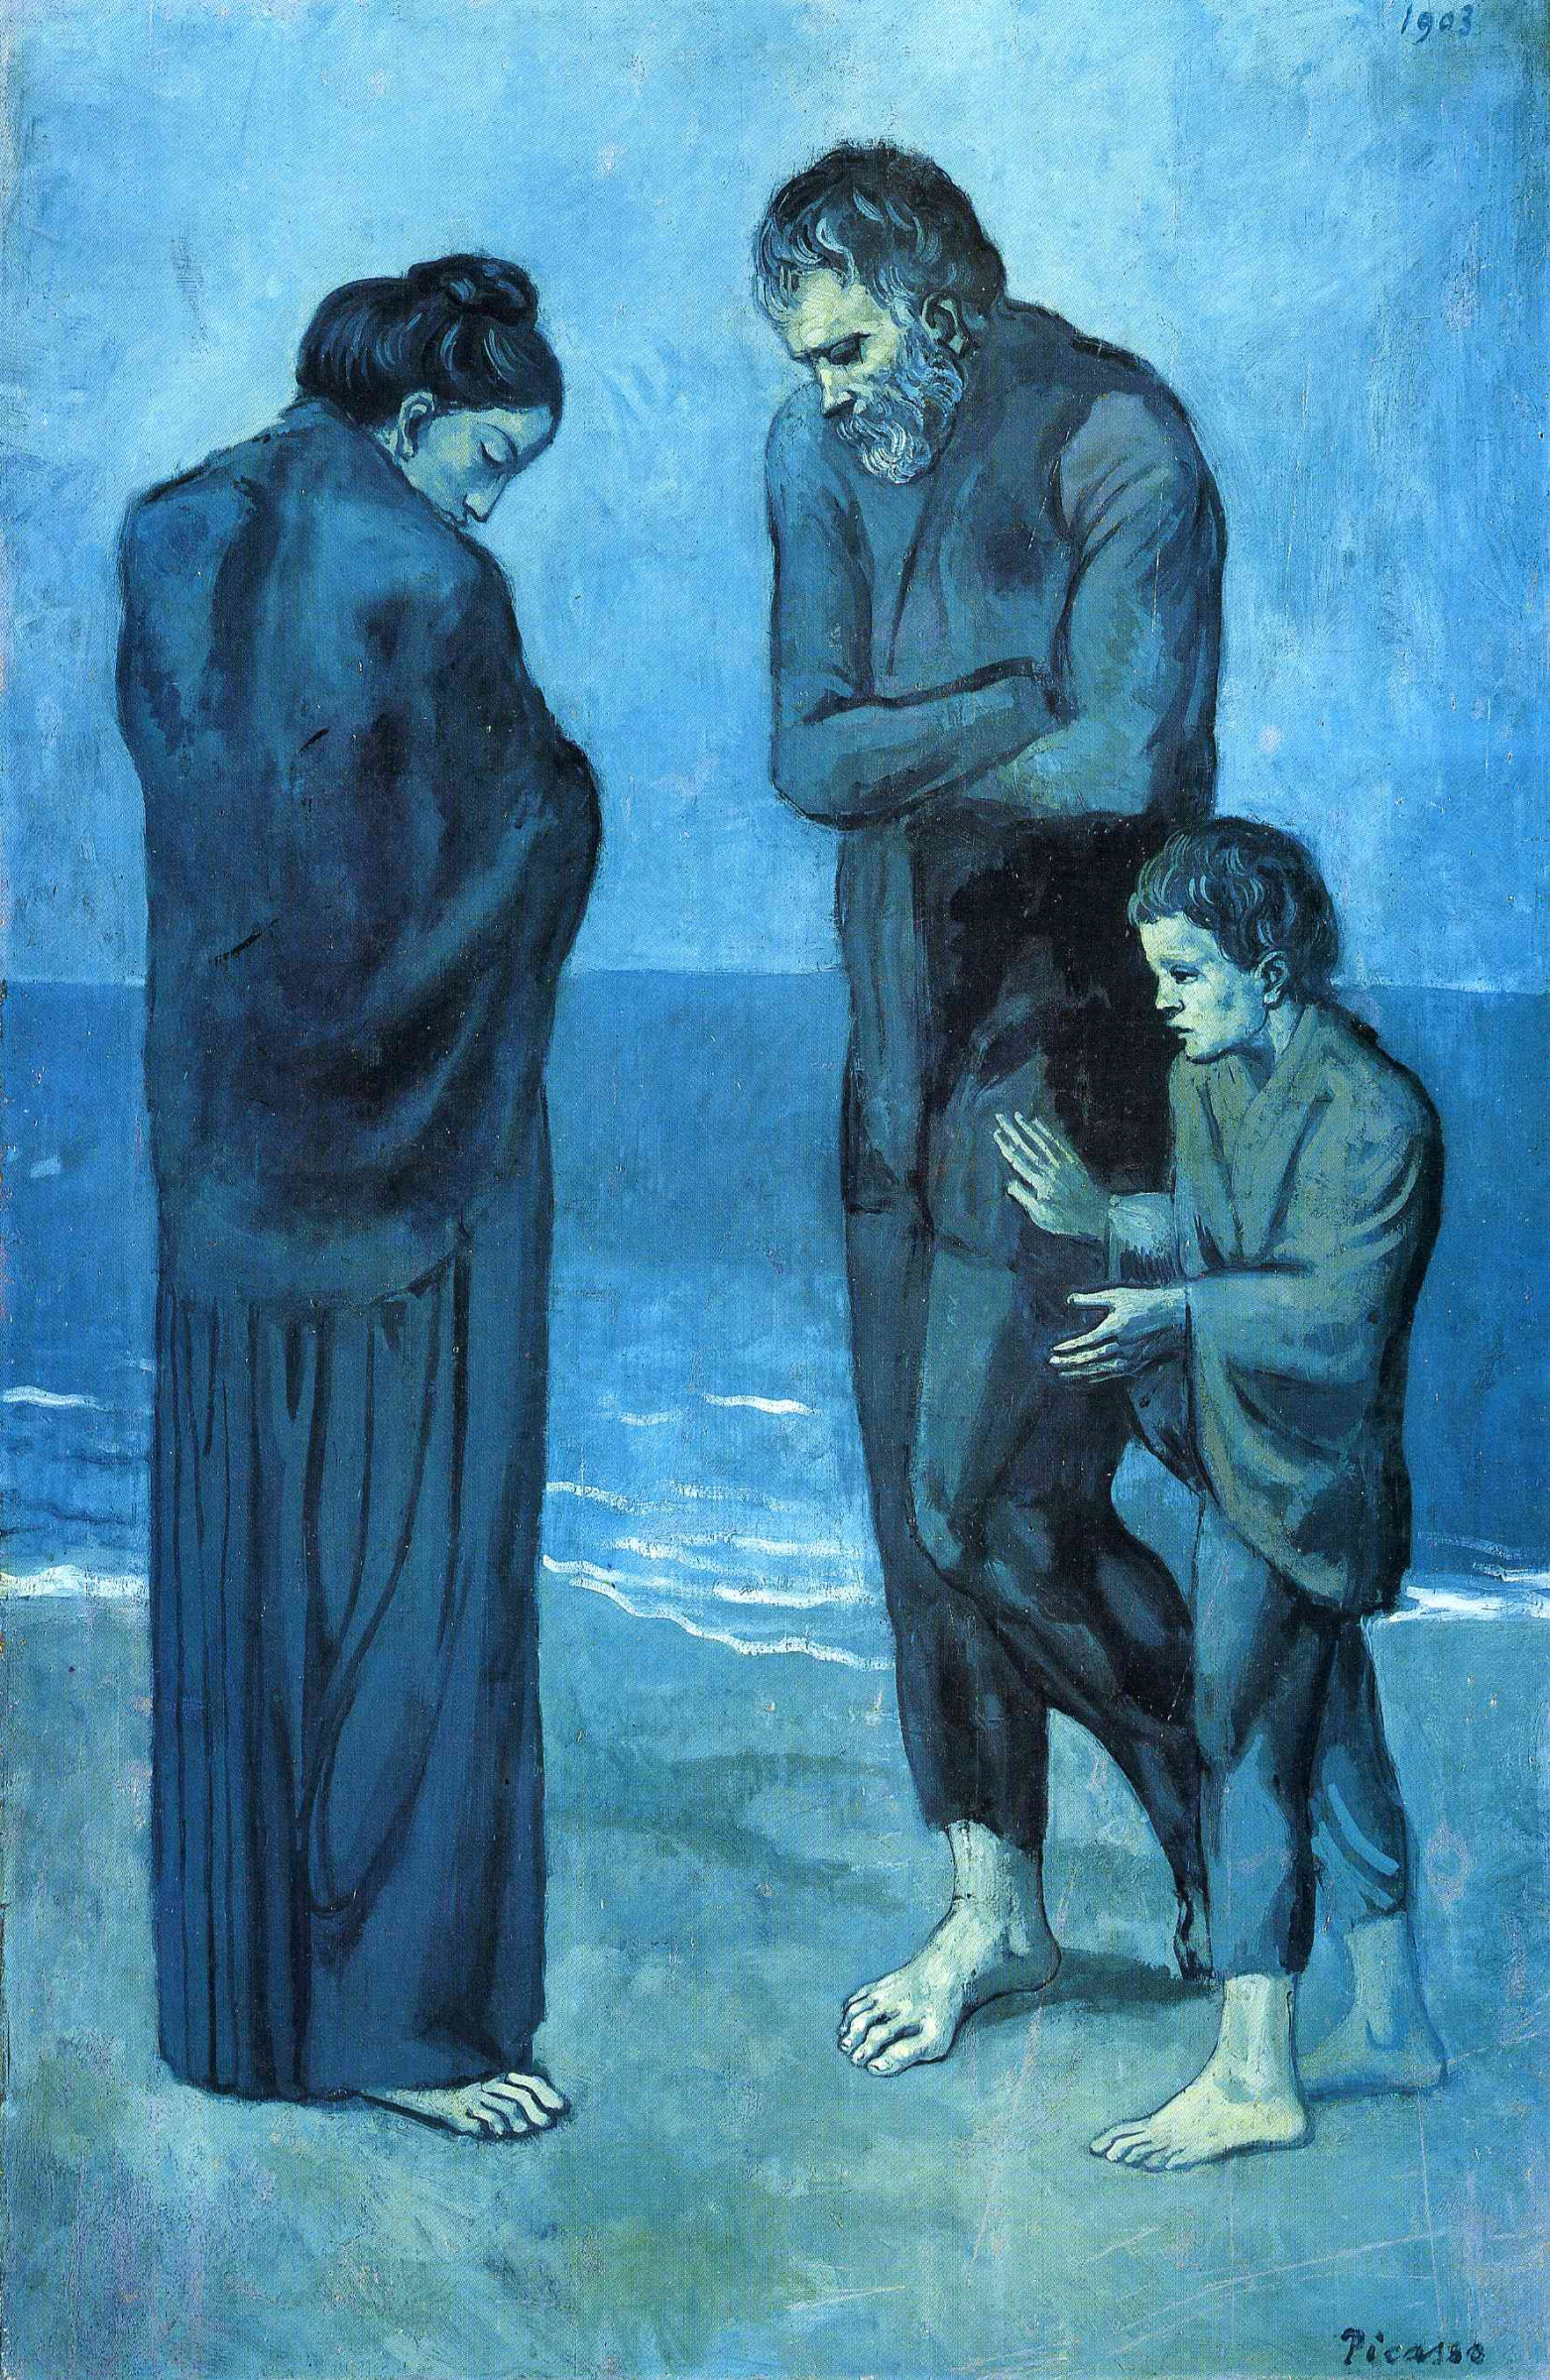 picasso-1903-the-tragedy-national-gallery-of-art-washingon